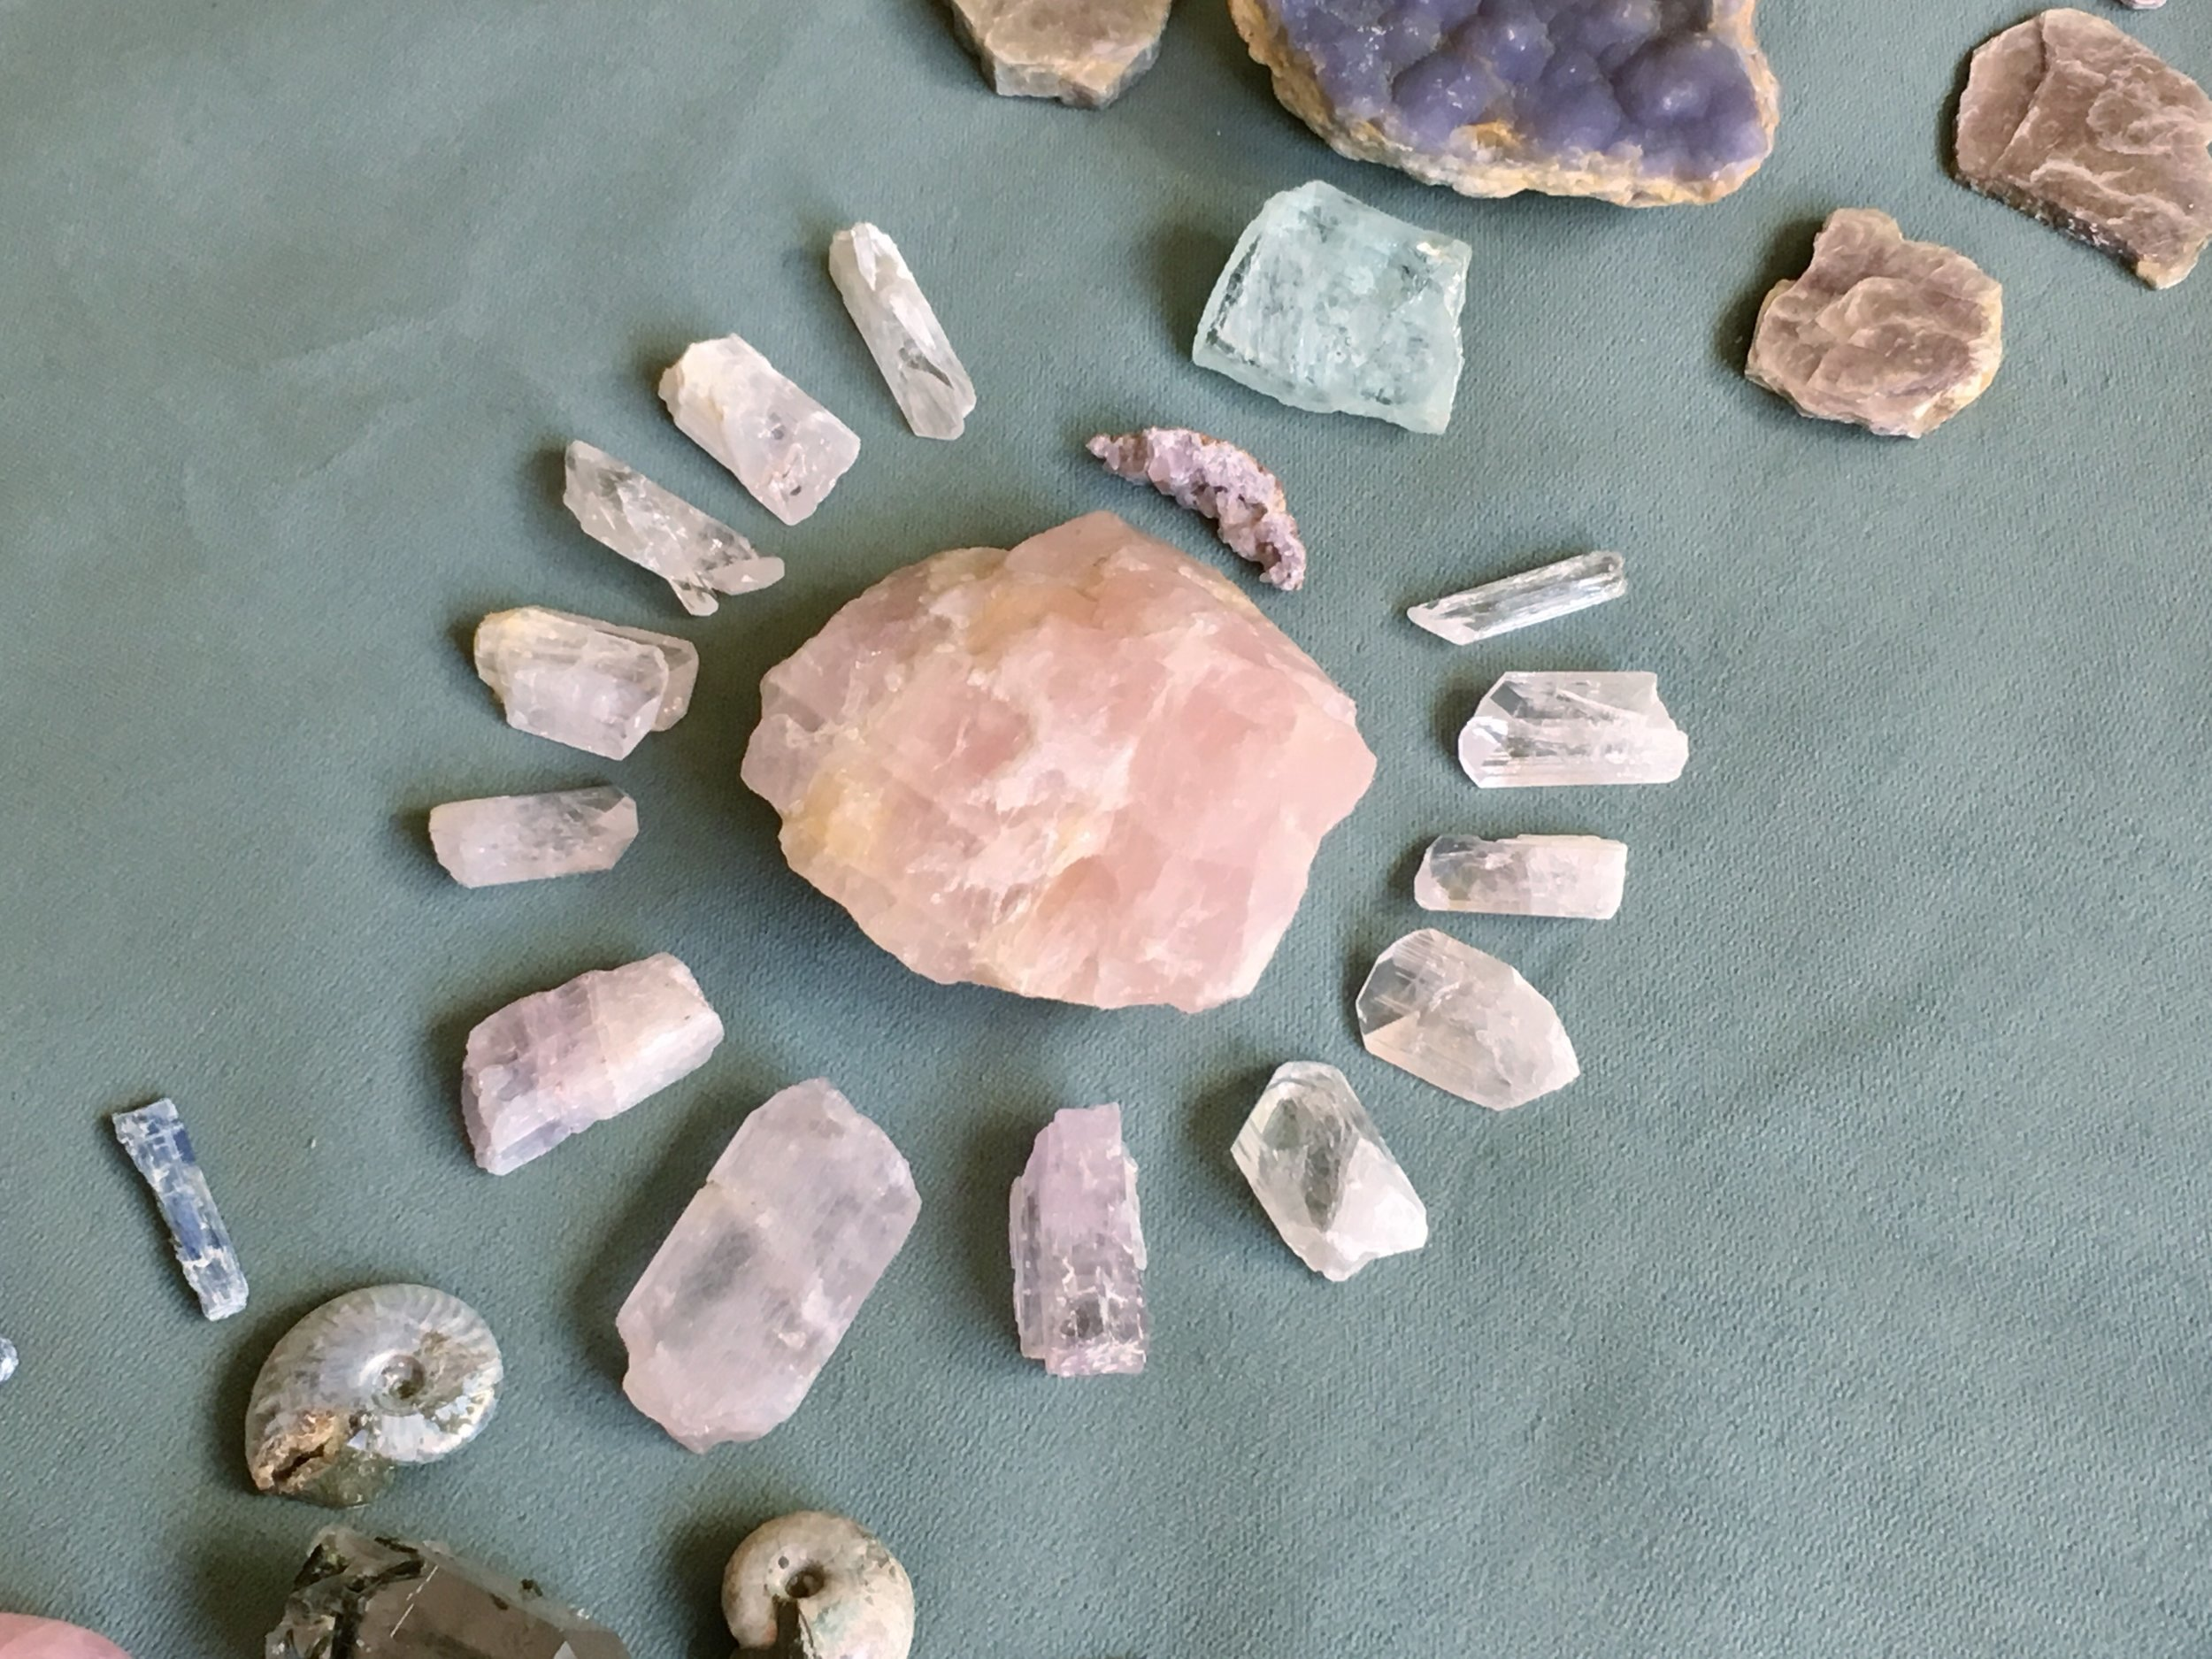 Minerals in the grid for helping to support the energies of the heart this week.